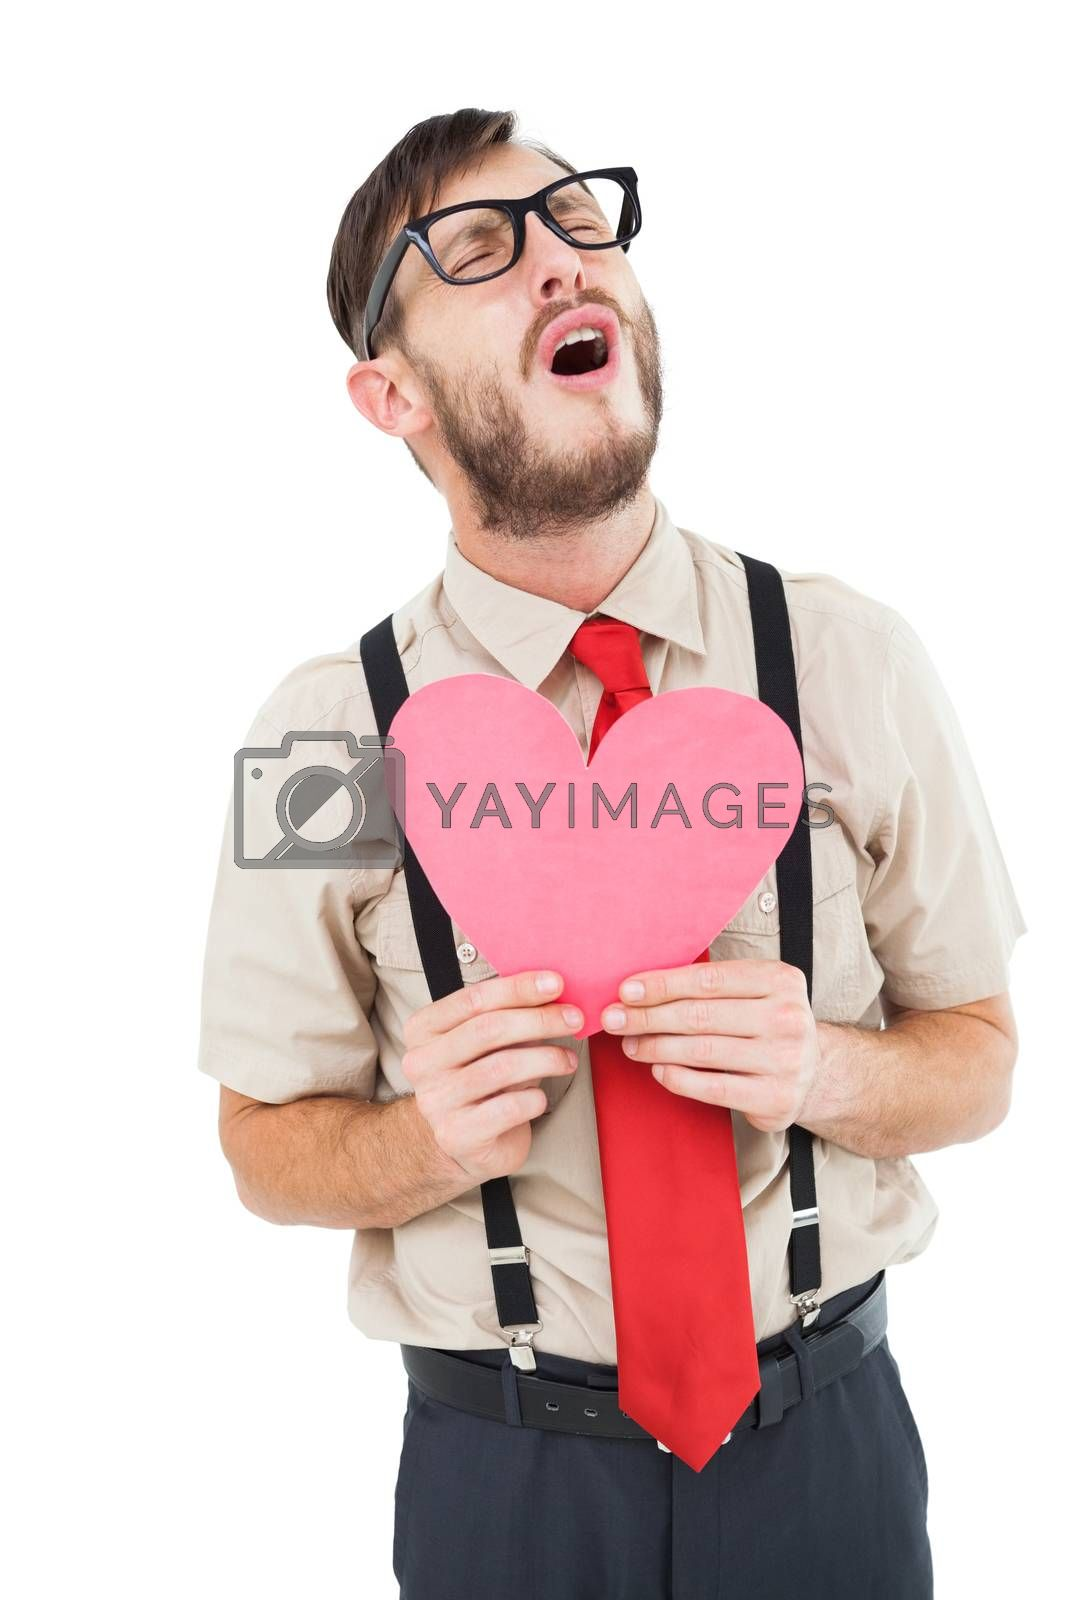 Geeky hipster crying and holding heart card on white background